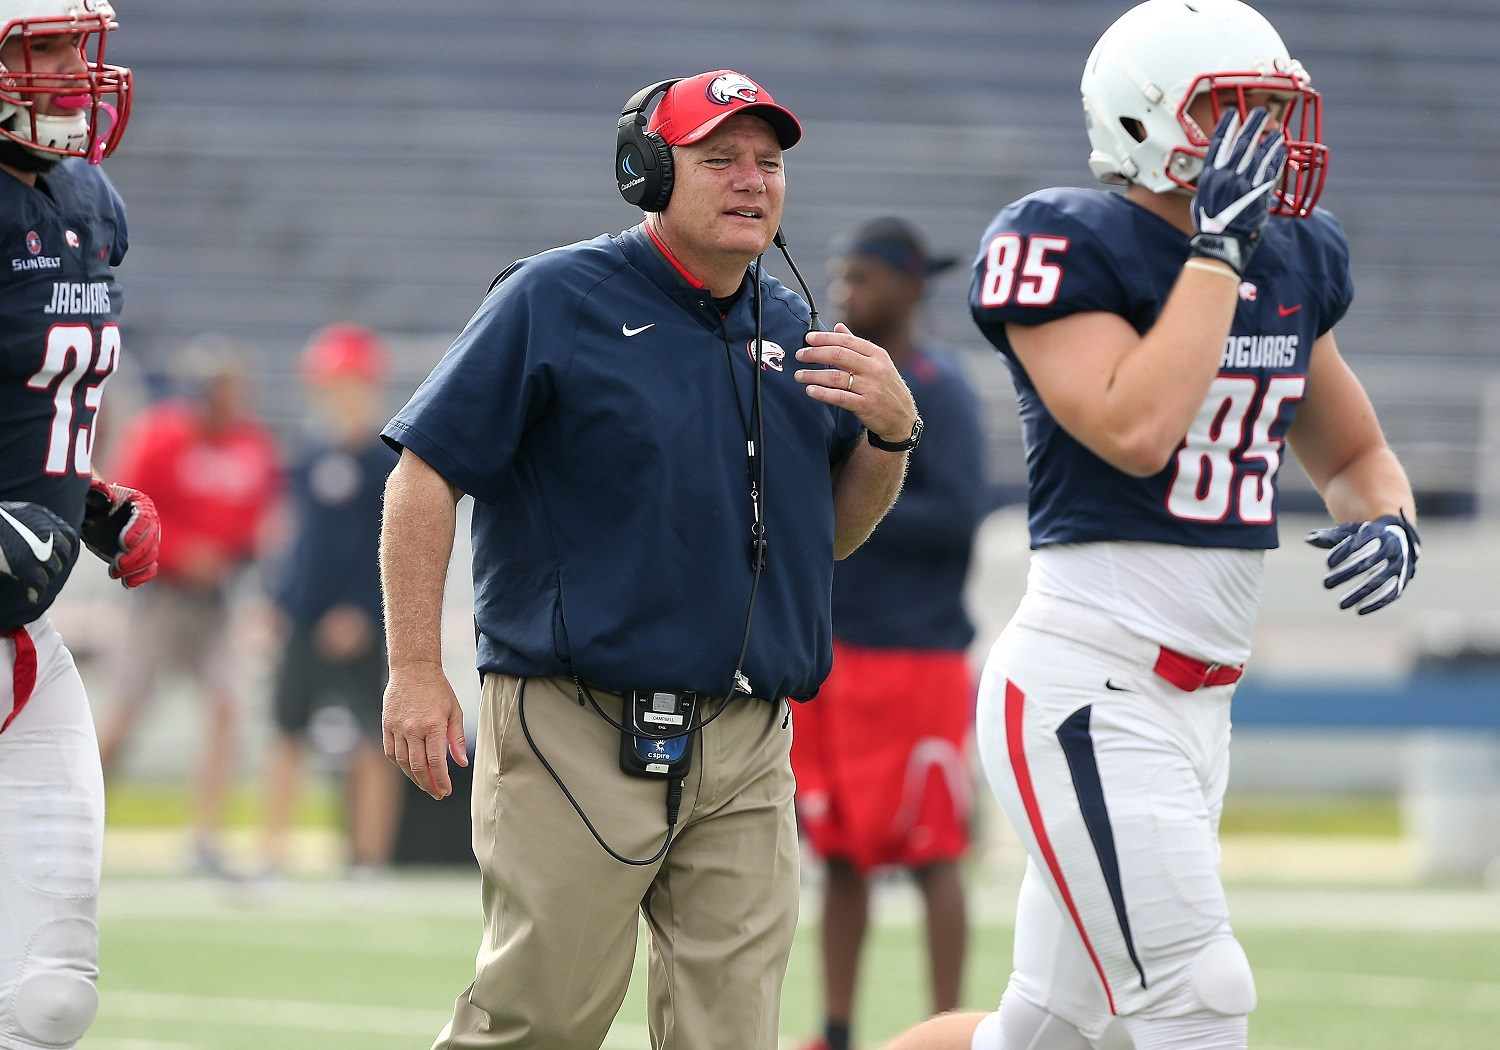 WNSP interview with South Alabama head coach Steve Campbell!